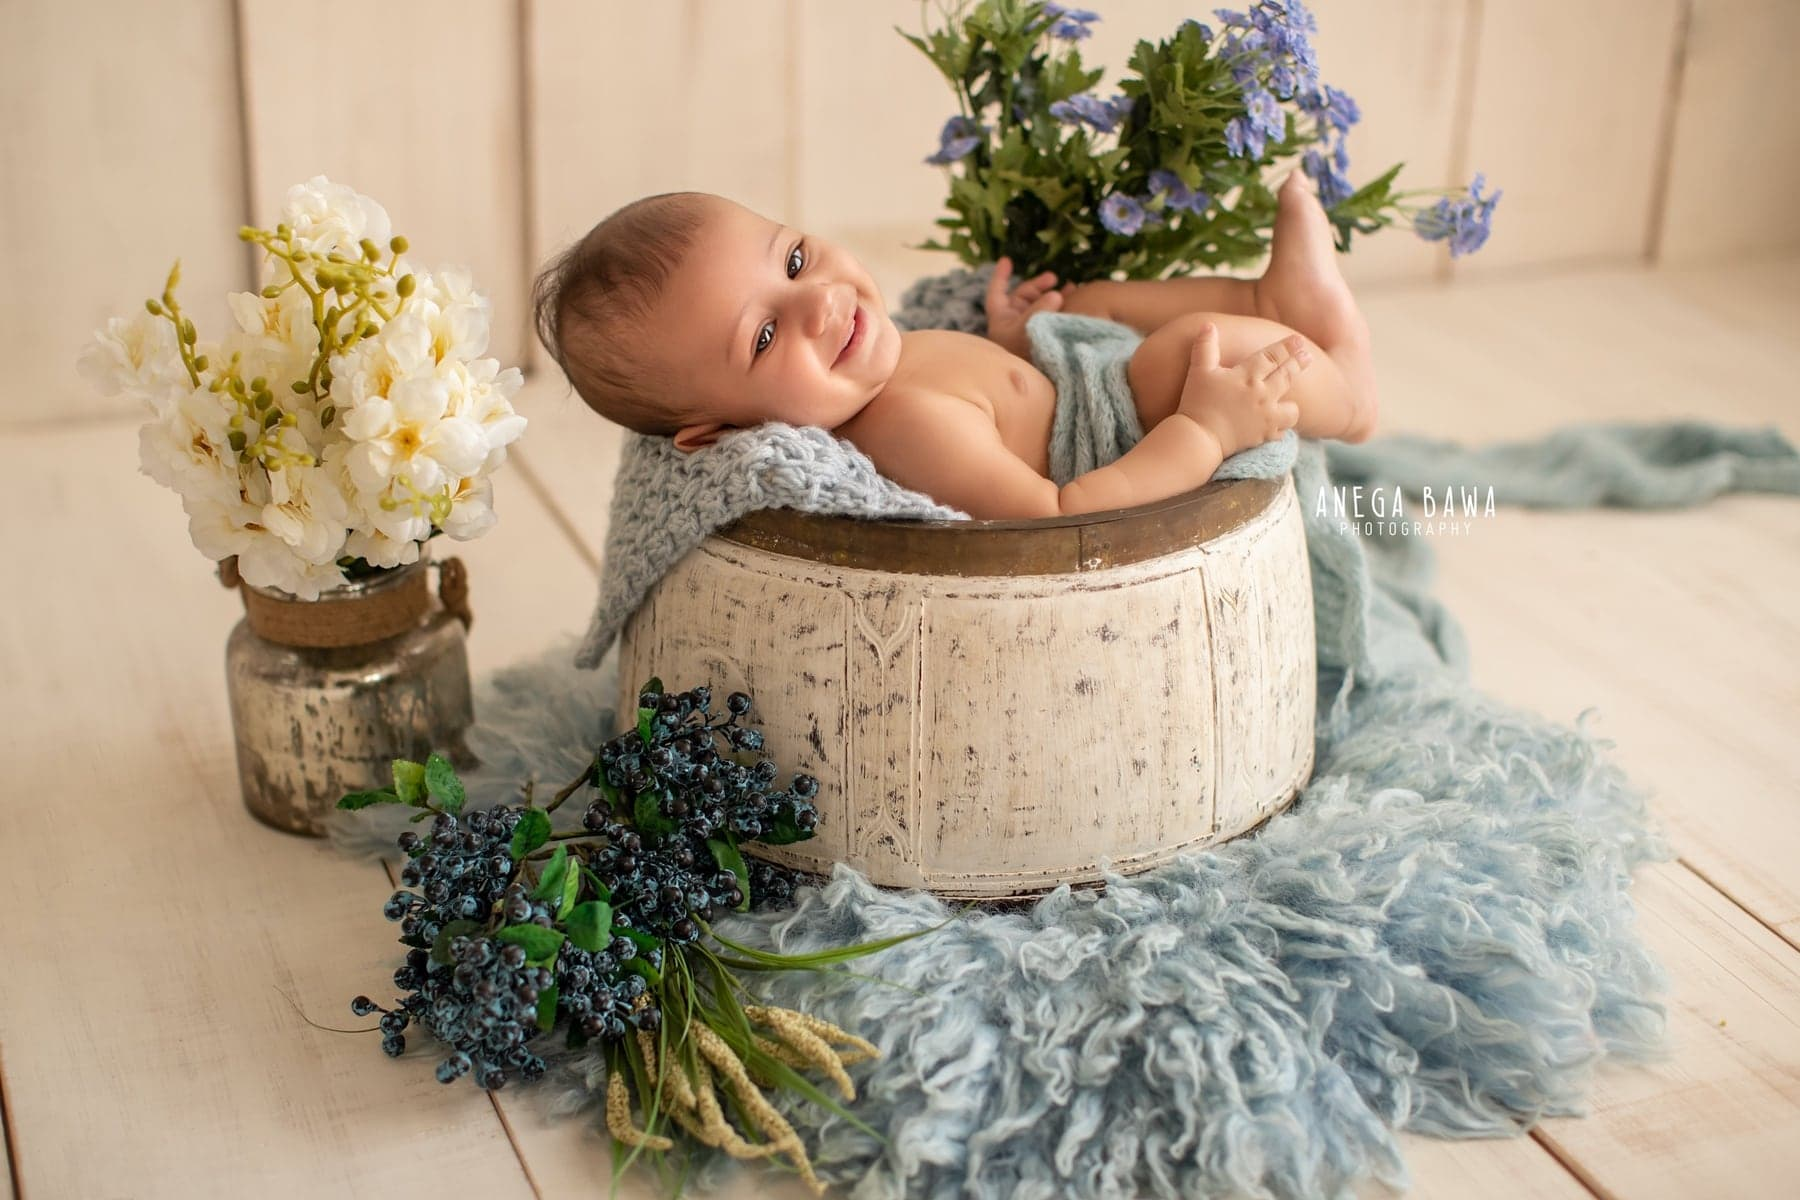 245601-white-wooden-background-blue-floral-baby-photography-delhi-4-5-6-7-months-baby-photoshoot-gurgaon-anega-bawa